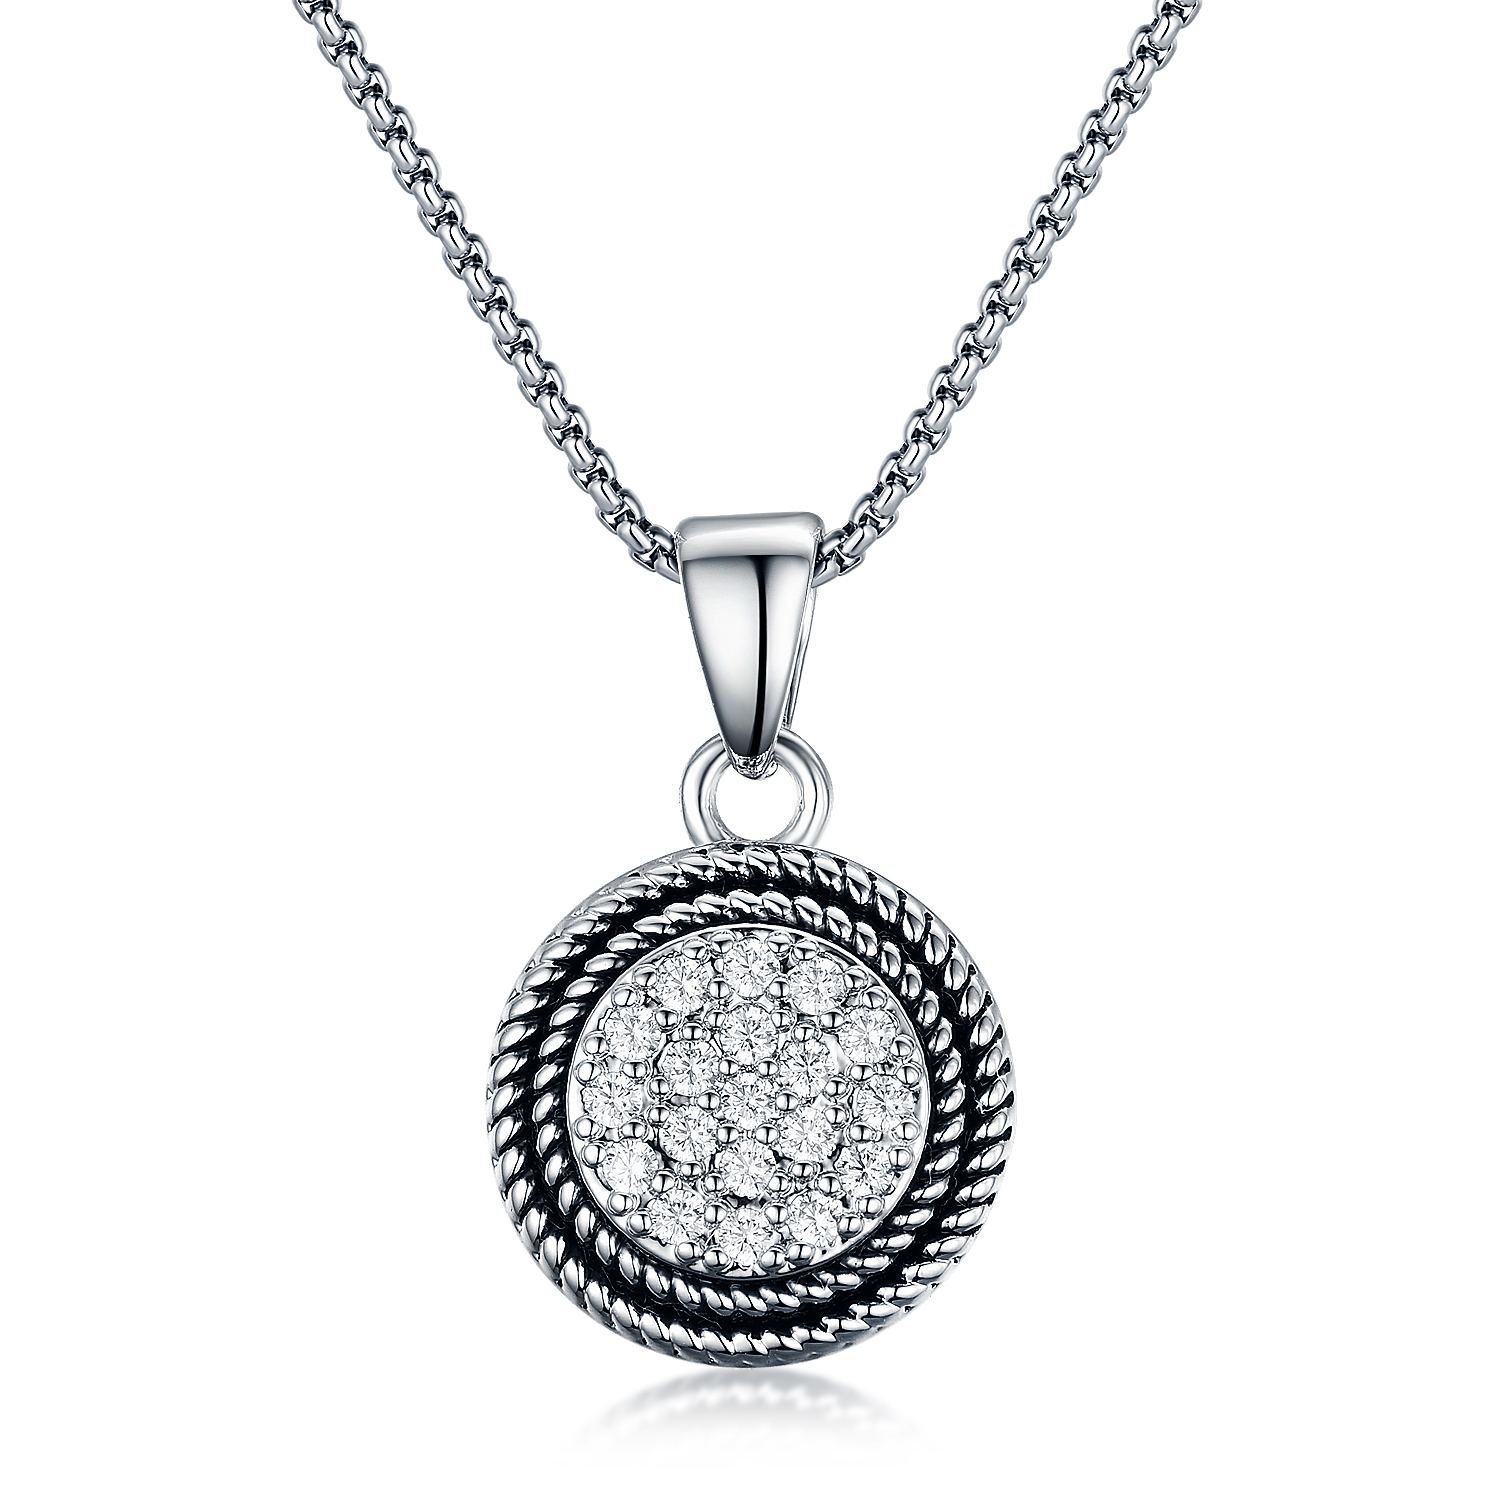 ST2680P-Designer inspired antique Cable texture Round Pendant with White Pave Cubic Zircon in Center under Rhodium plated from China Top Jewelry vendor